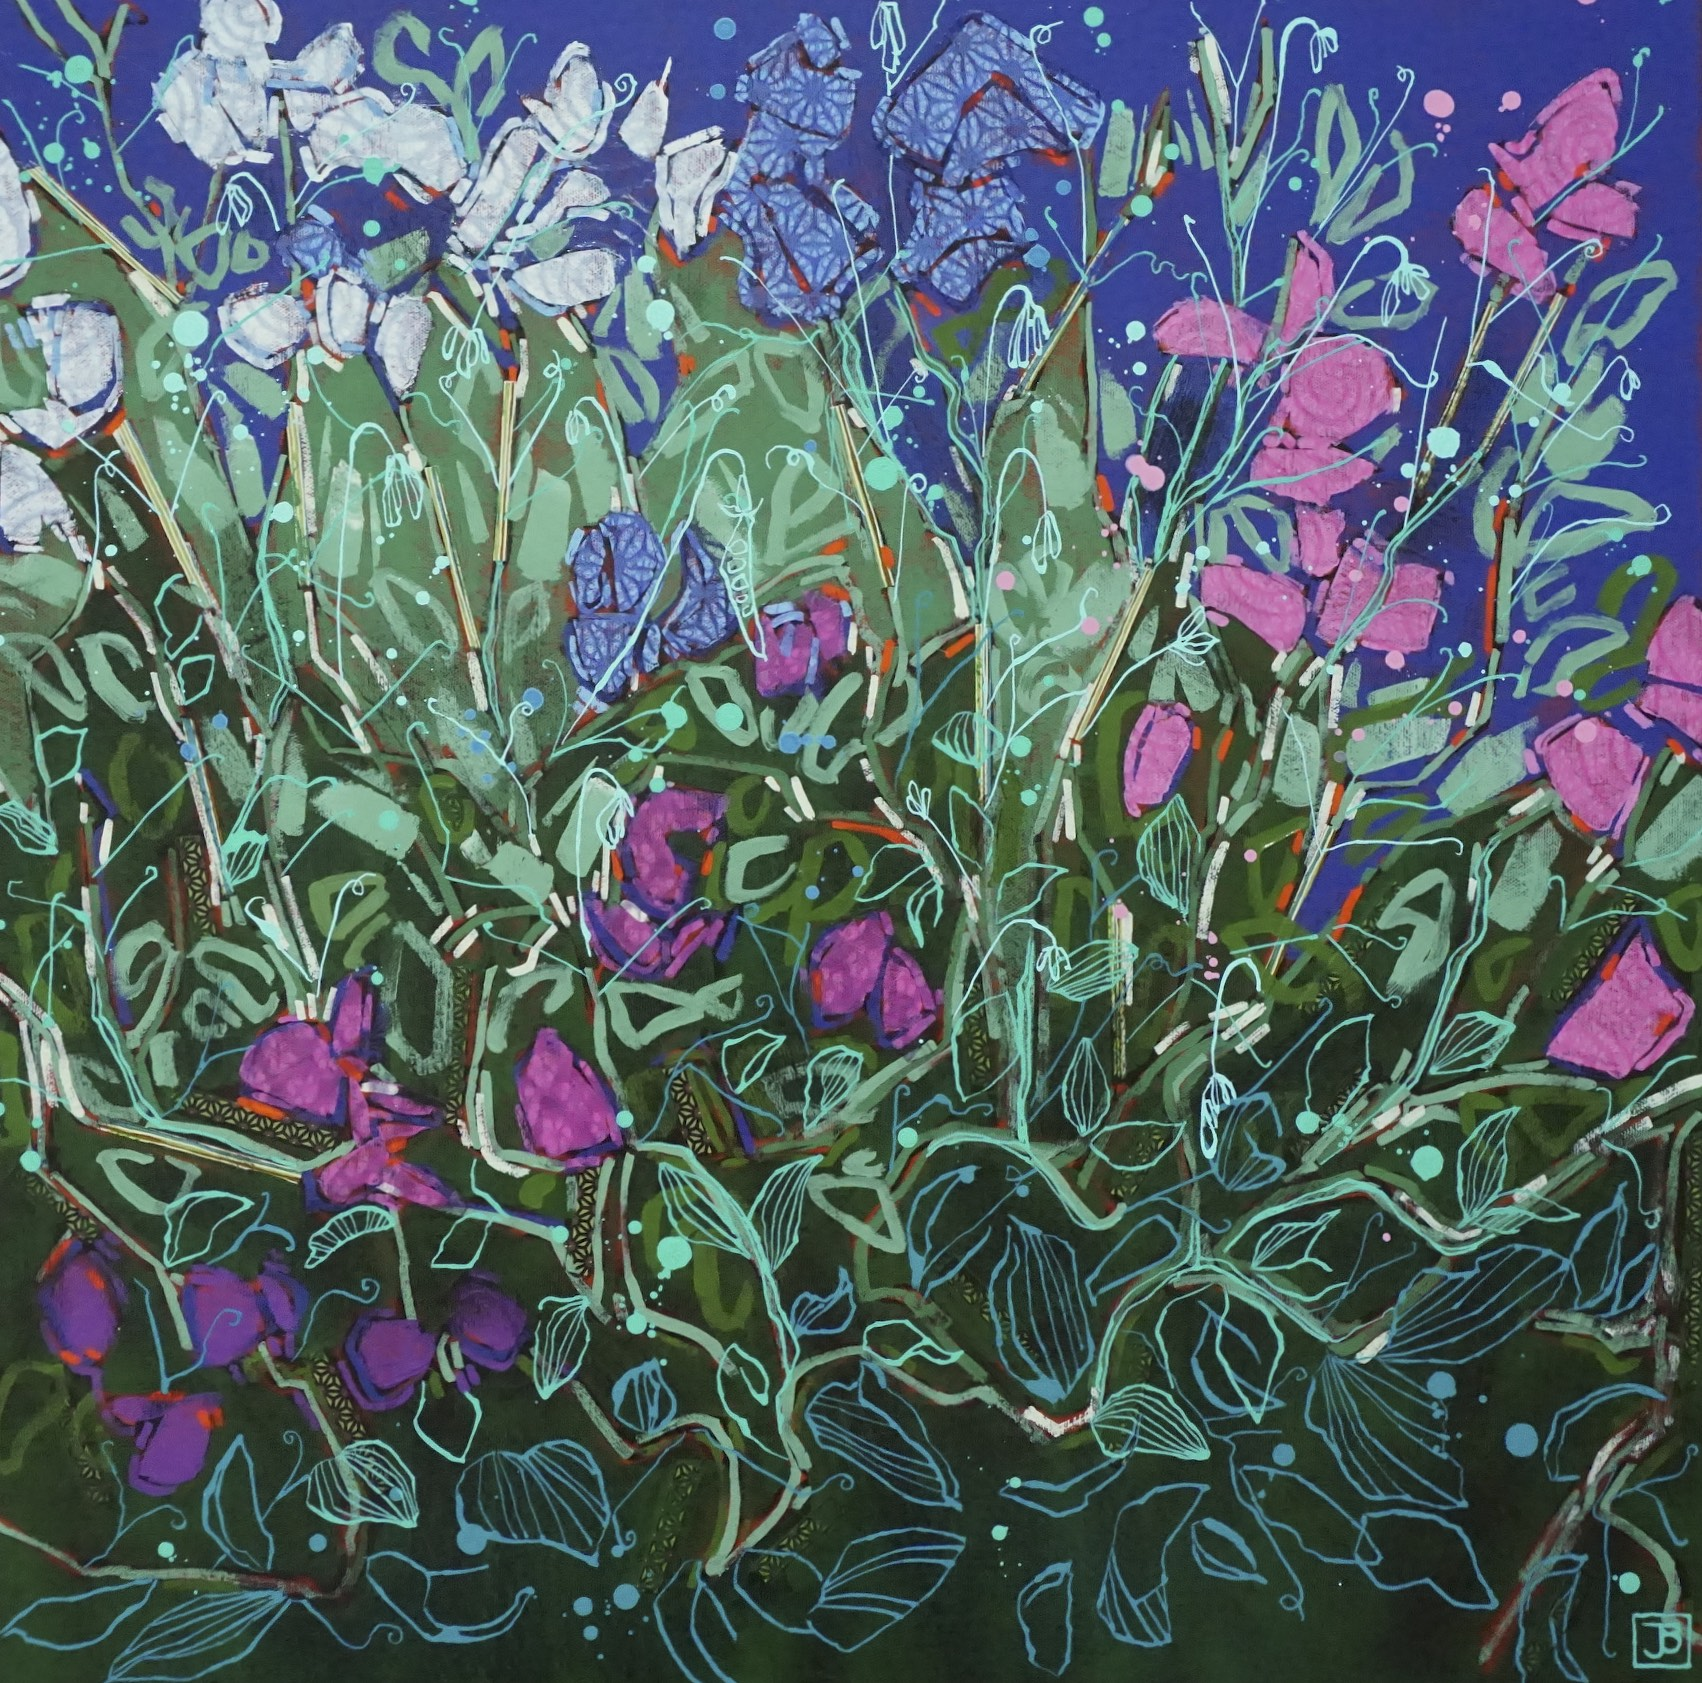 sweetpeas,  mixed media on canvas, 24x24(in), $1010 + GST,  2018